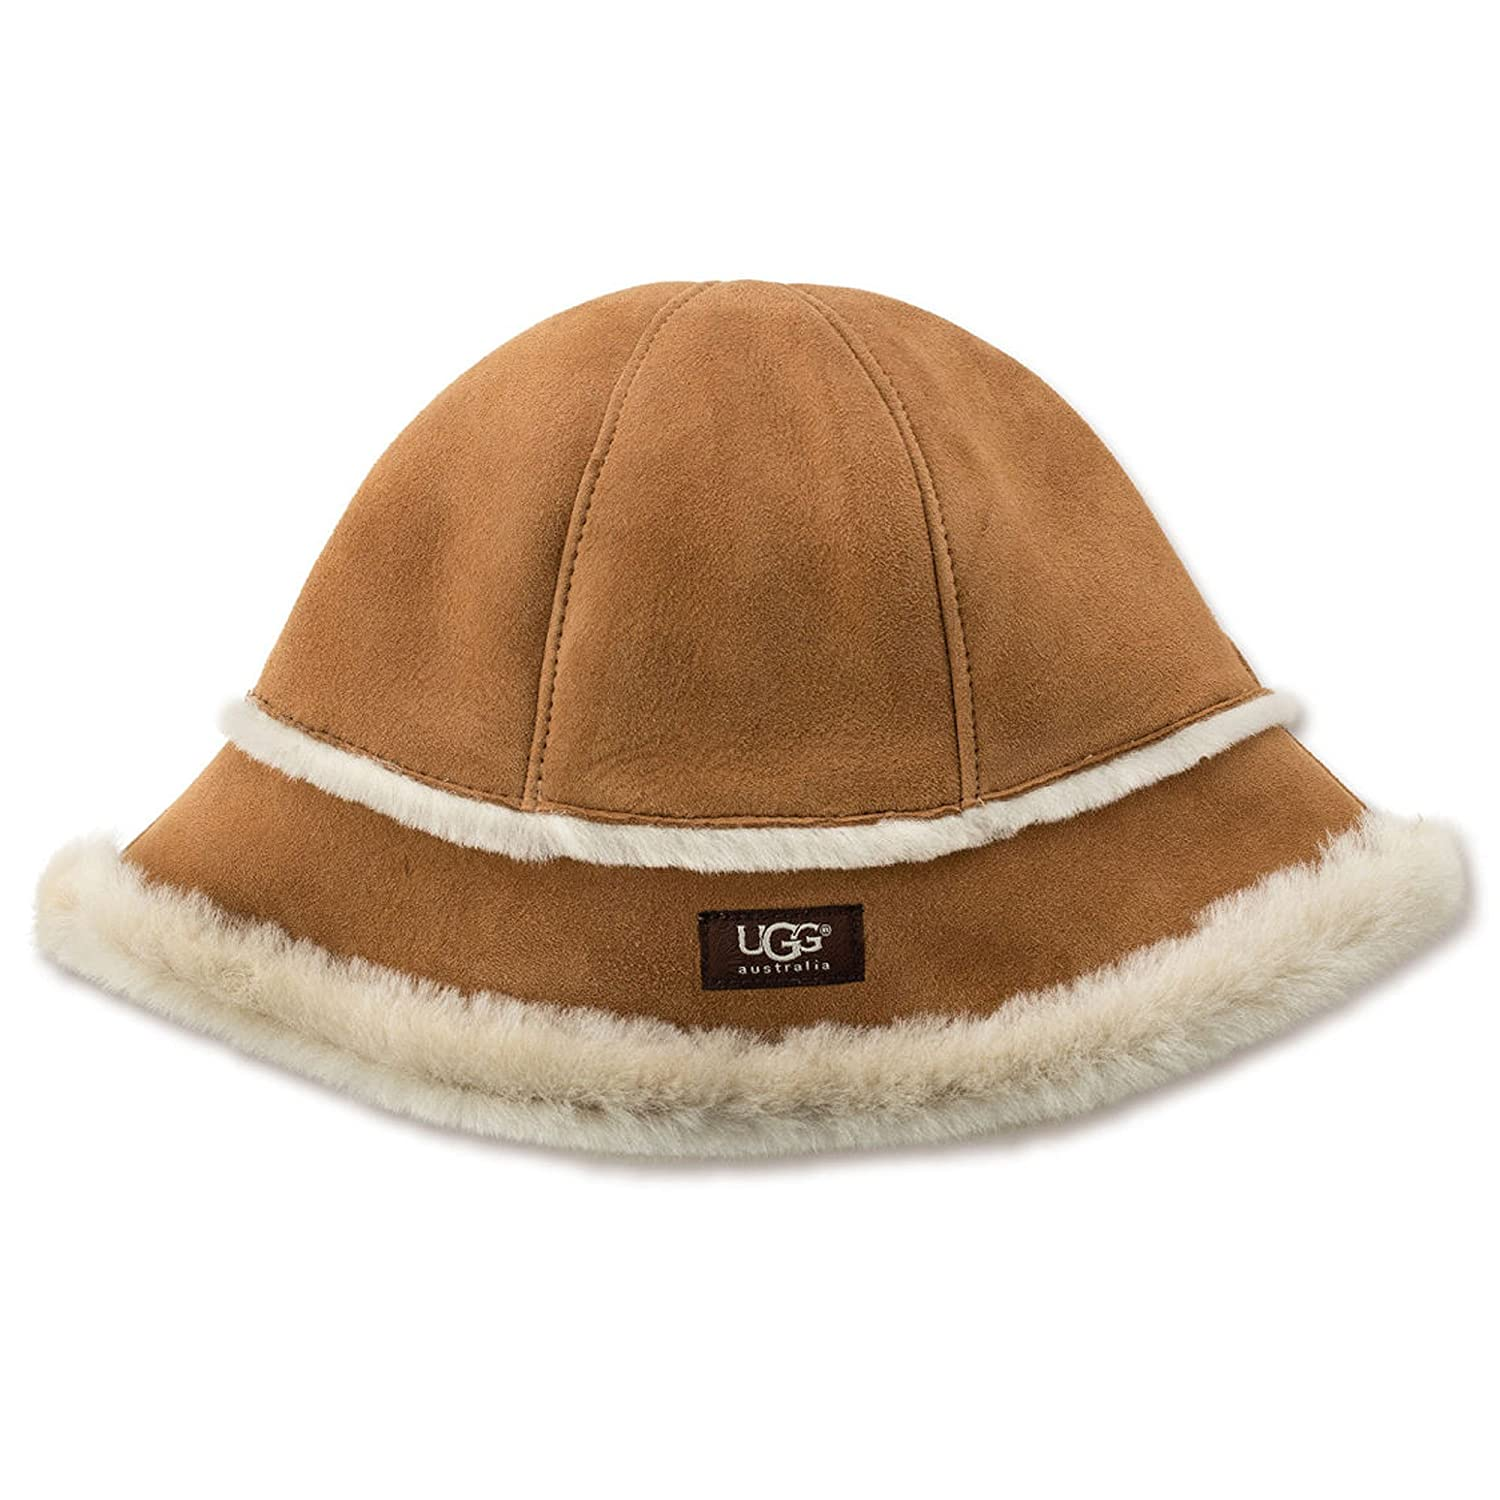 987c6aeaf UGG Women's Sheepskin City Bucket Hat